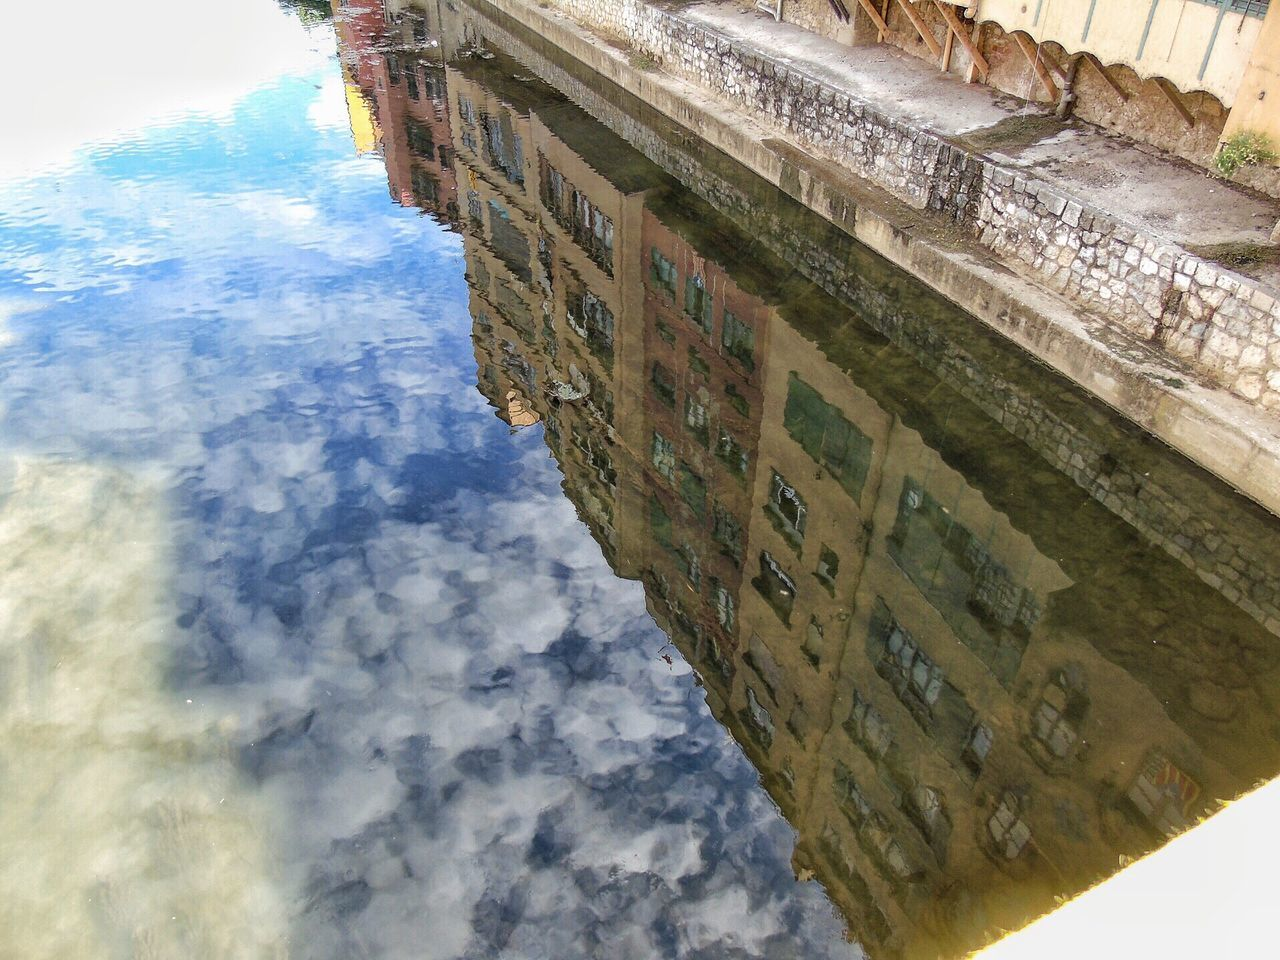 The Great Outdoors - 2017 EyeEm Awards Architecture Water Reflection Building Exterior Built Structure Day Outdoors Waterfront Sky No People Fish-eye Lens Nature Puddle Girona Temps De Flors 2017 Gironamenamora Girona